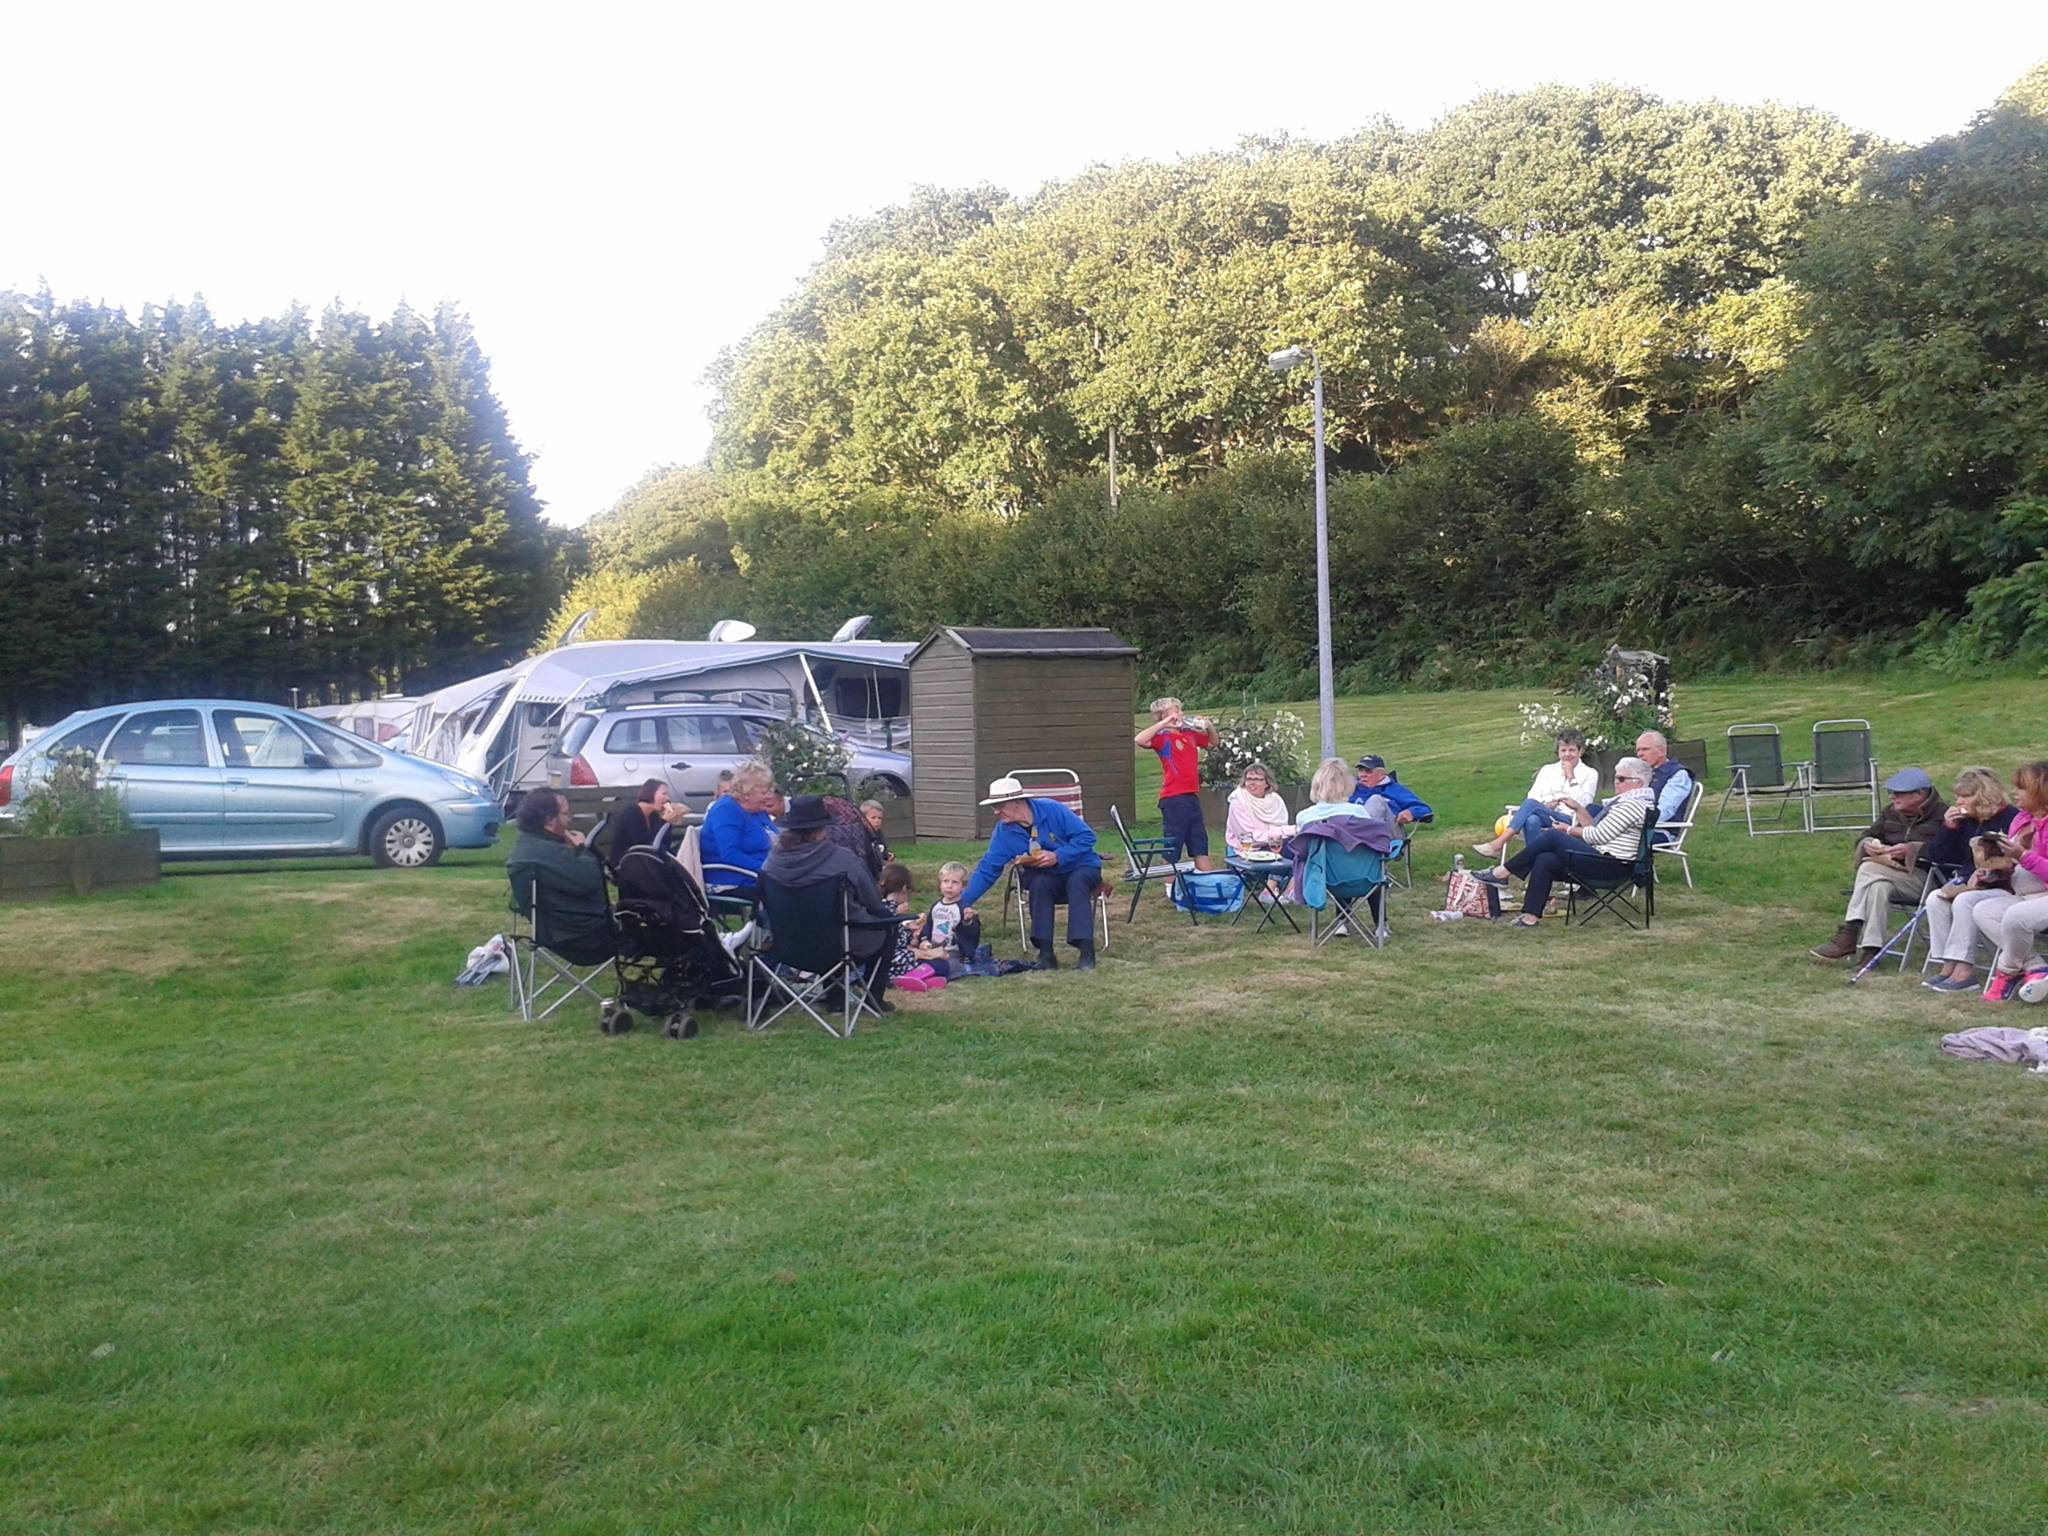 Touring caravan group picnic